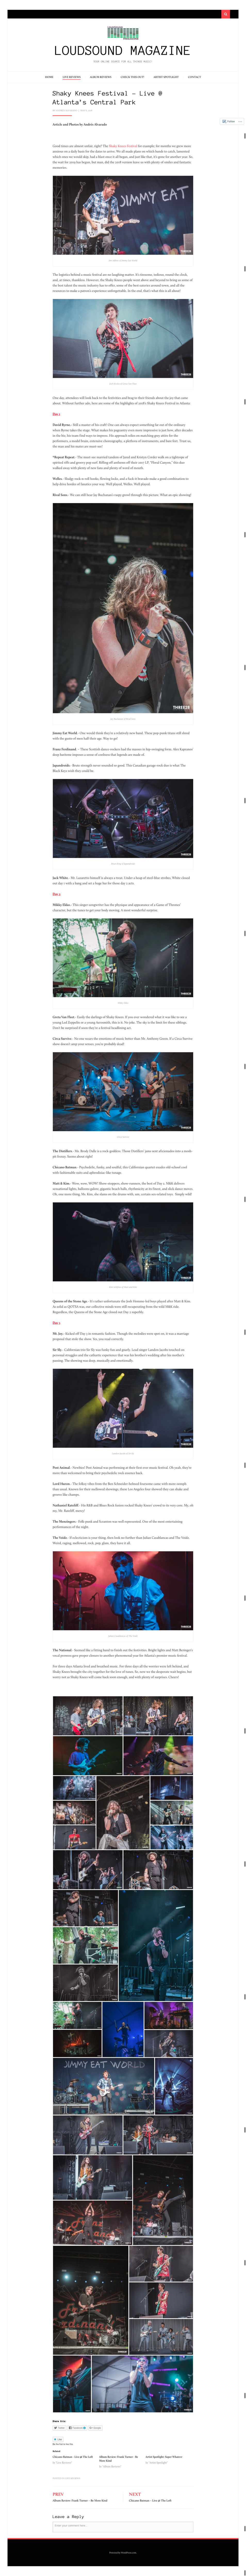 Shaky Knees Festival – LoudSound Magazine.png